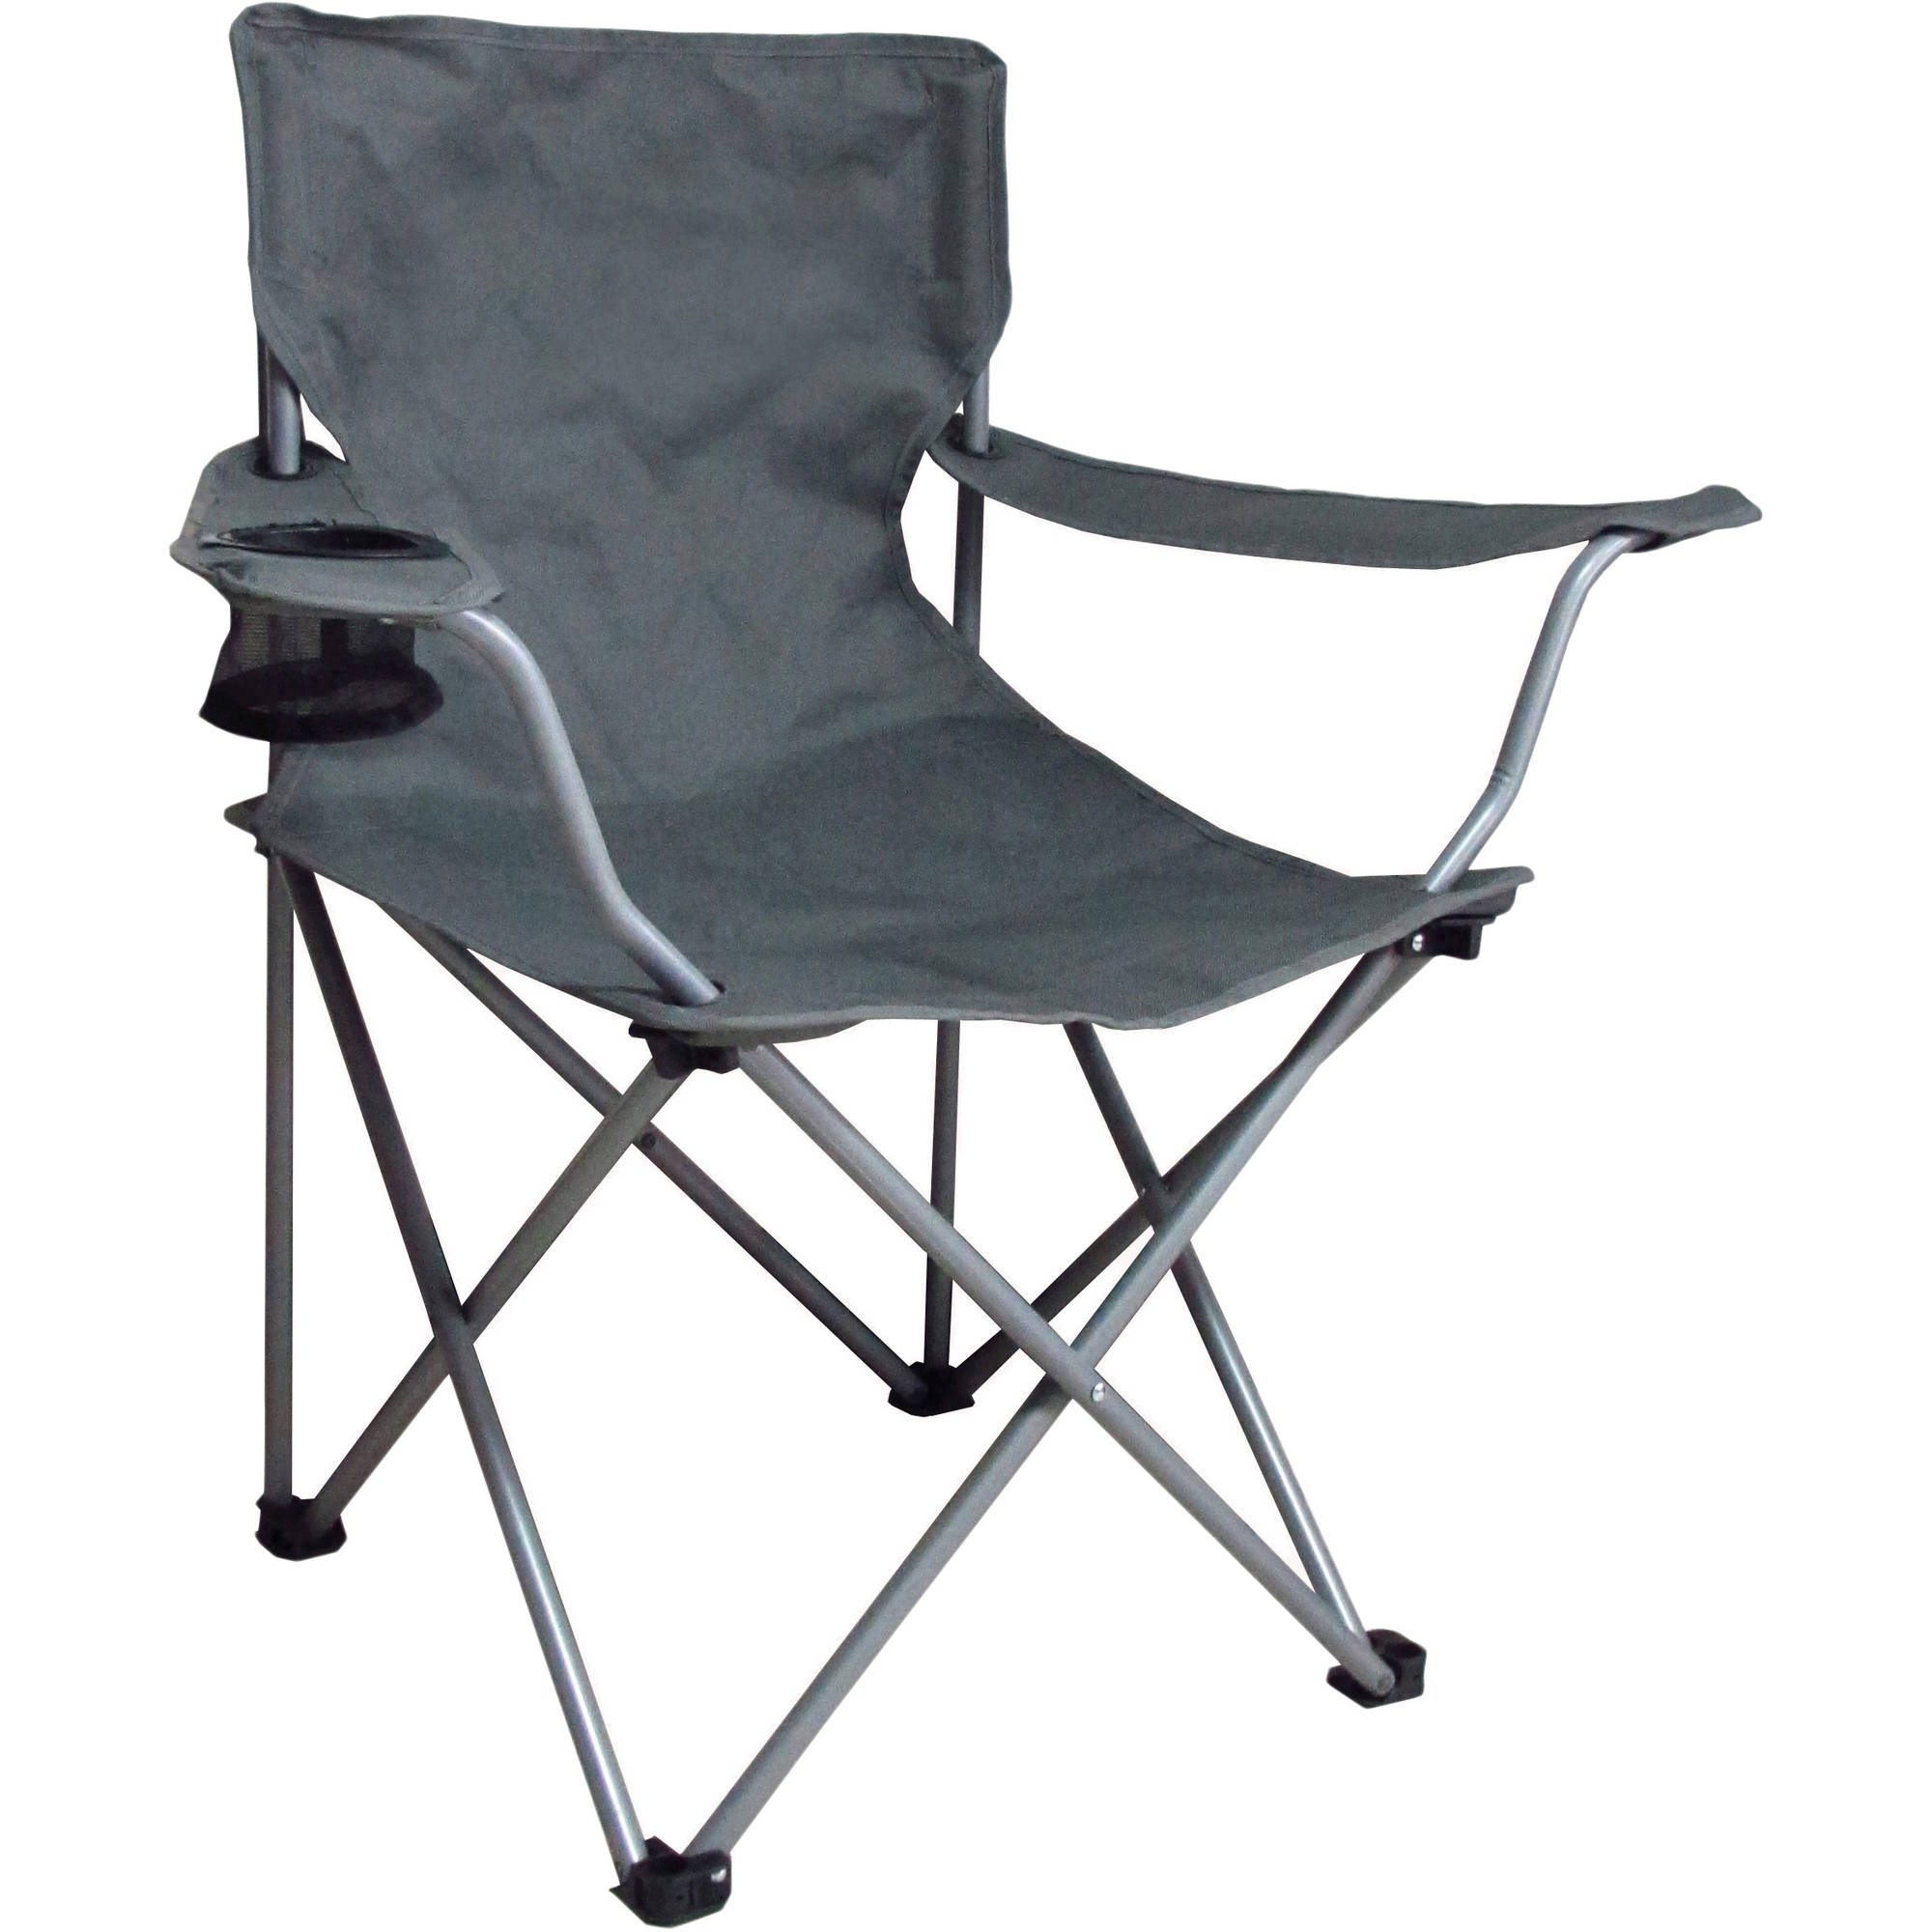 Ozark Trail Folding Chair GQXHEKH